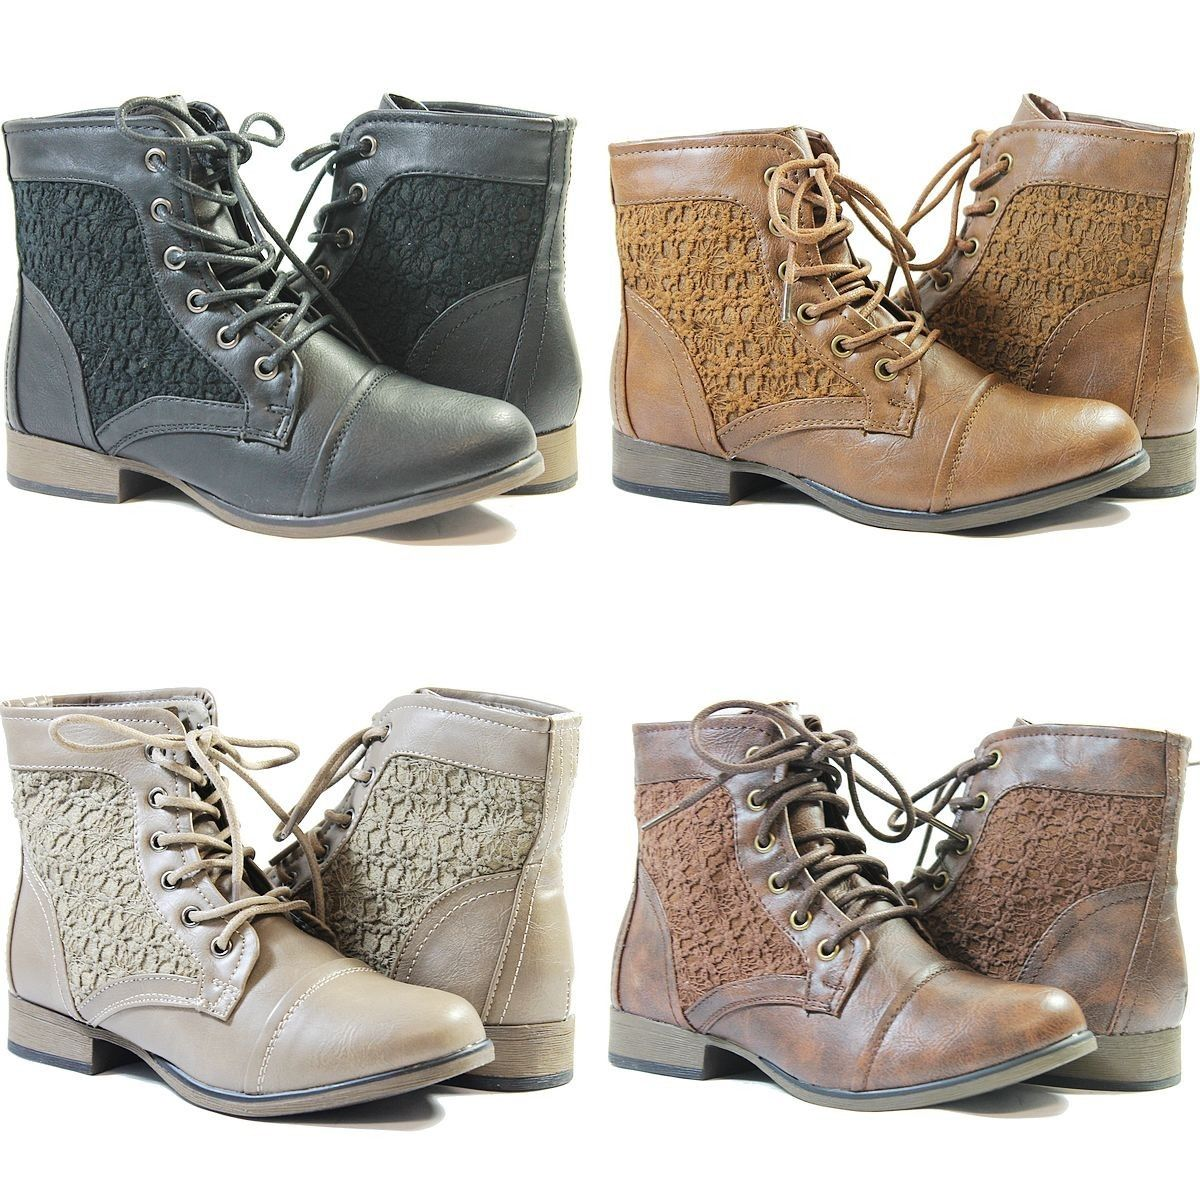 Cute Combat Boots For Women 1qPIAfH2